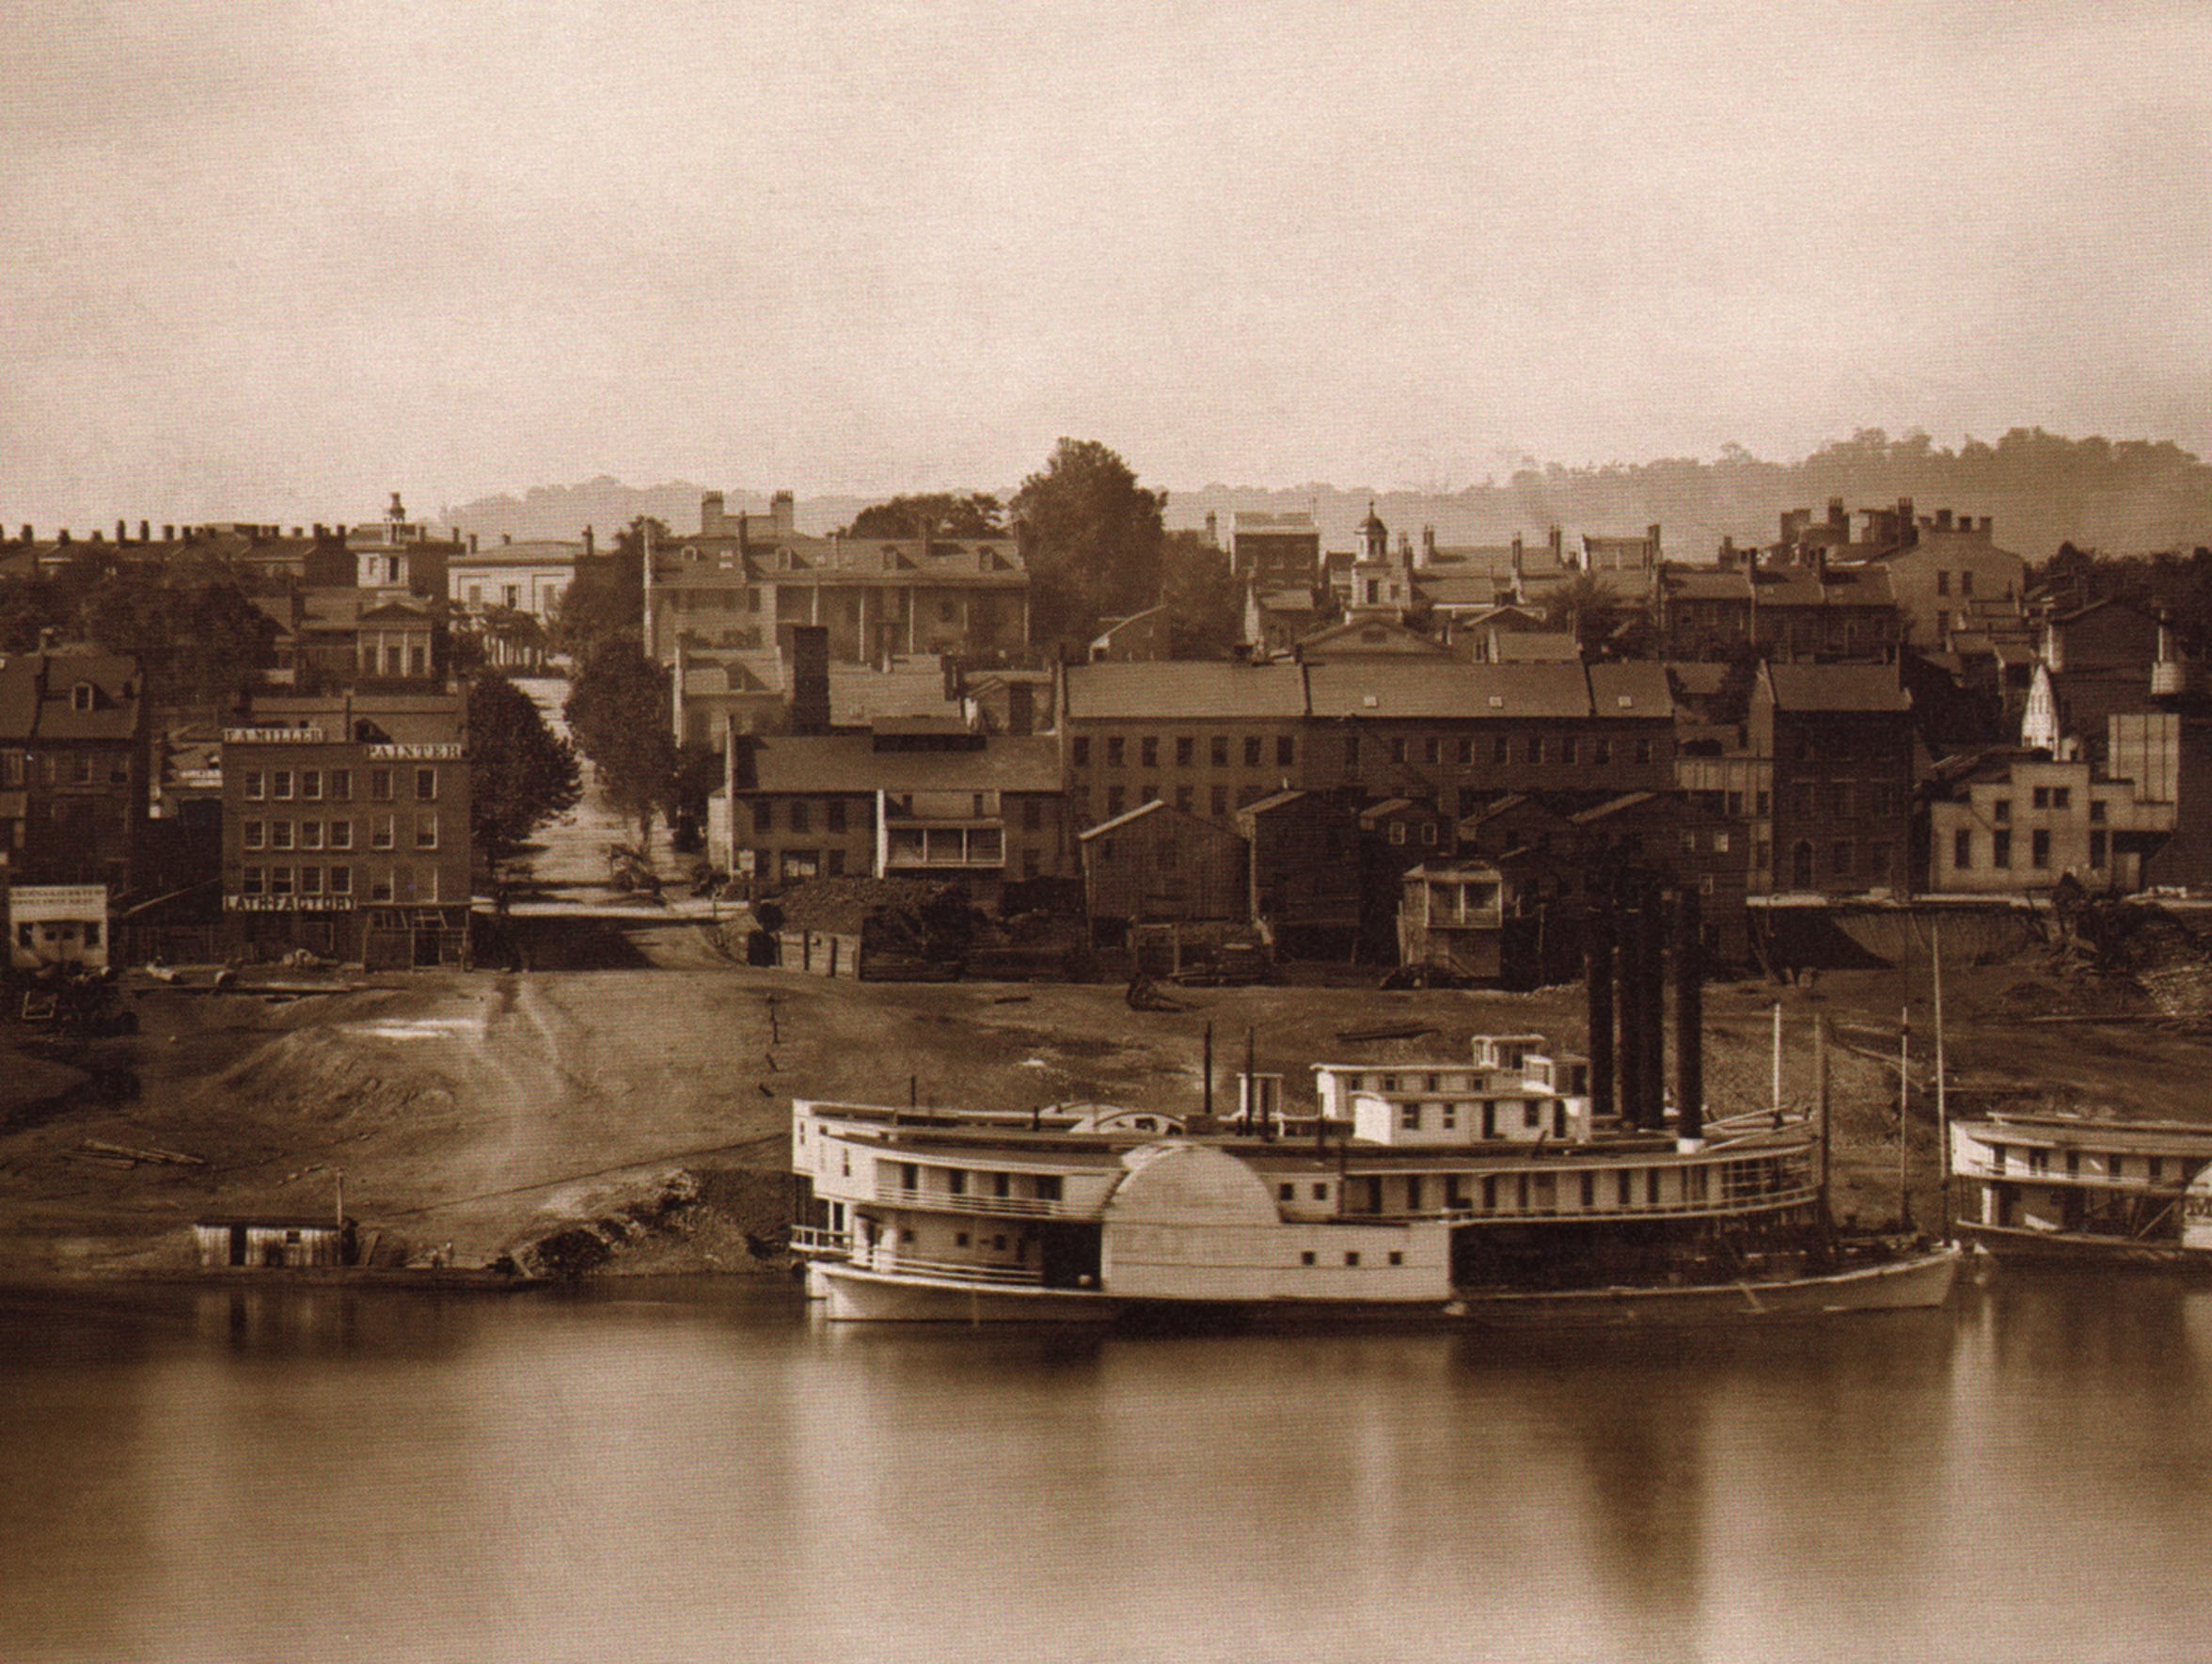 Daguerreotype of the Cincinnati skyline taken on September